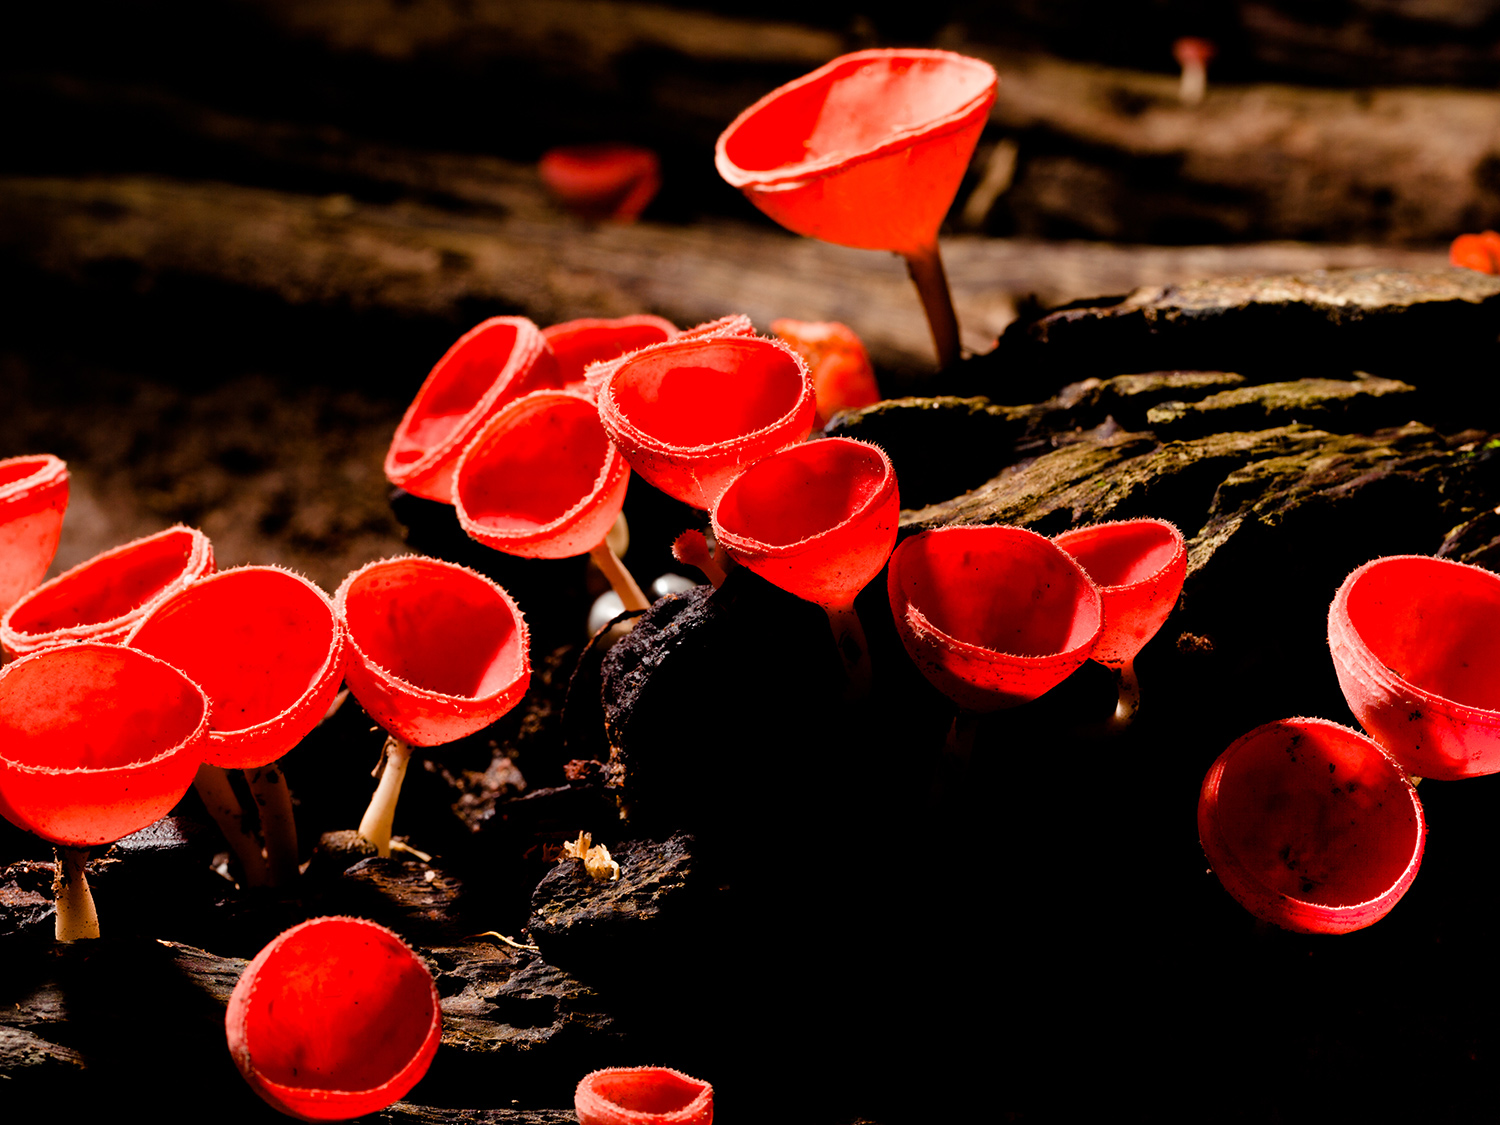 Ancient fungi may have laid the groundwork for complex life